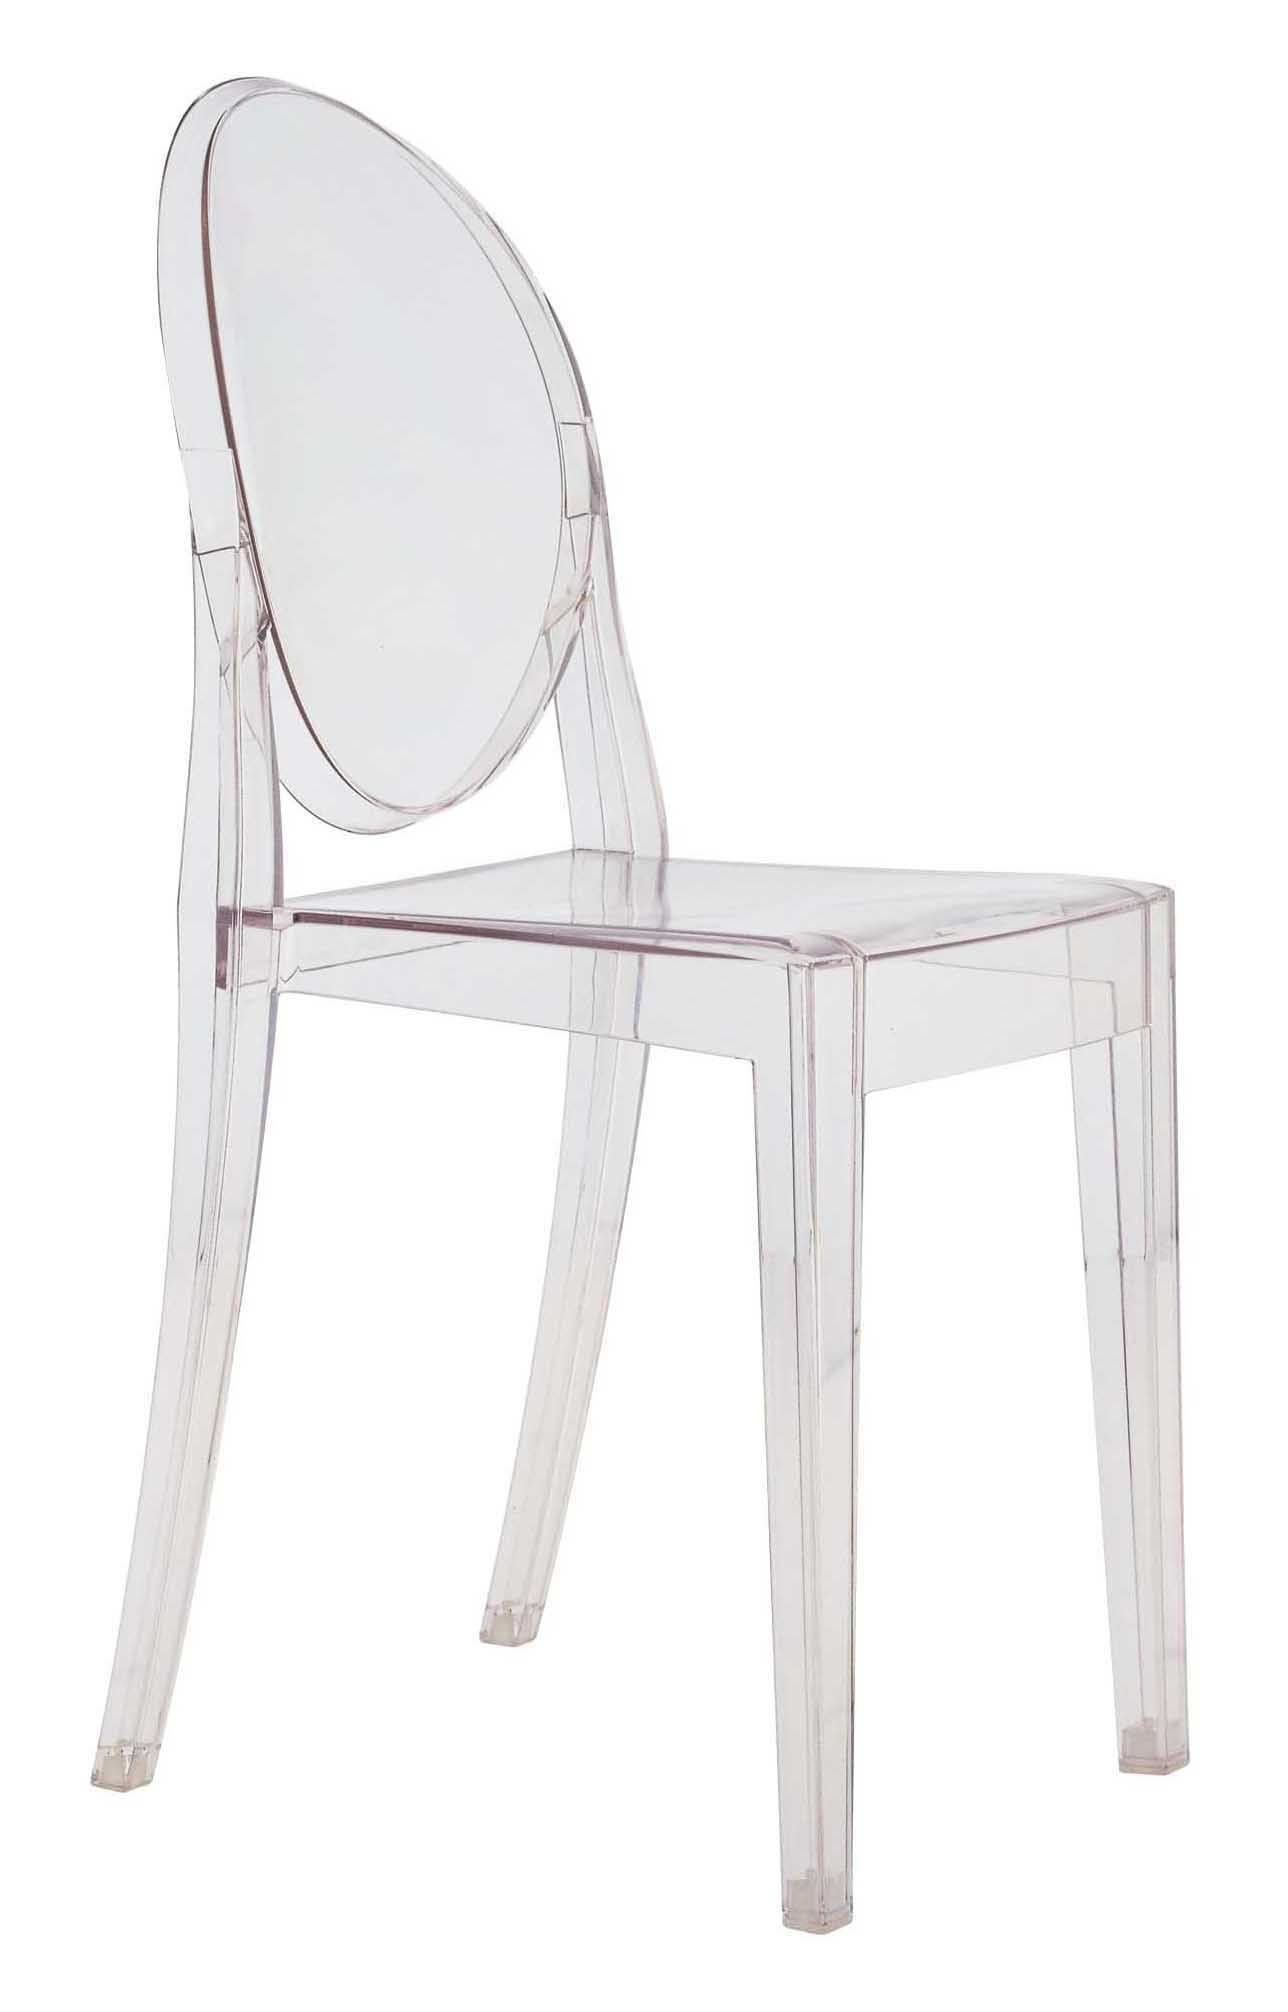 philippe starck ghost chair waterproof cover xl chaise empilable victoria transparente